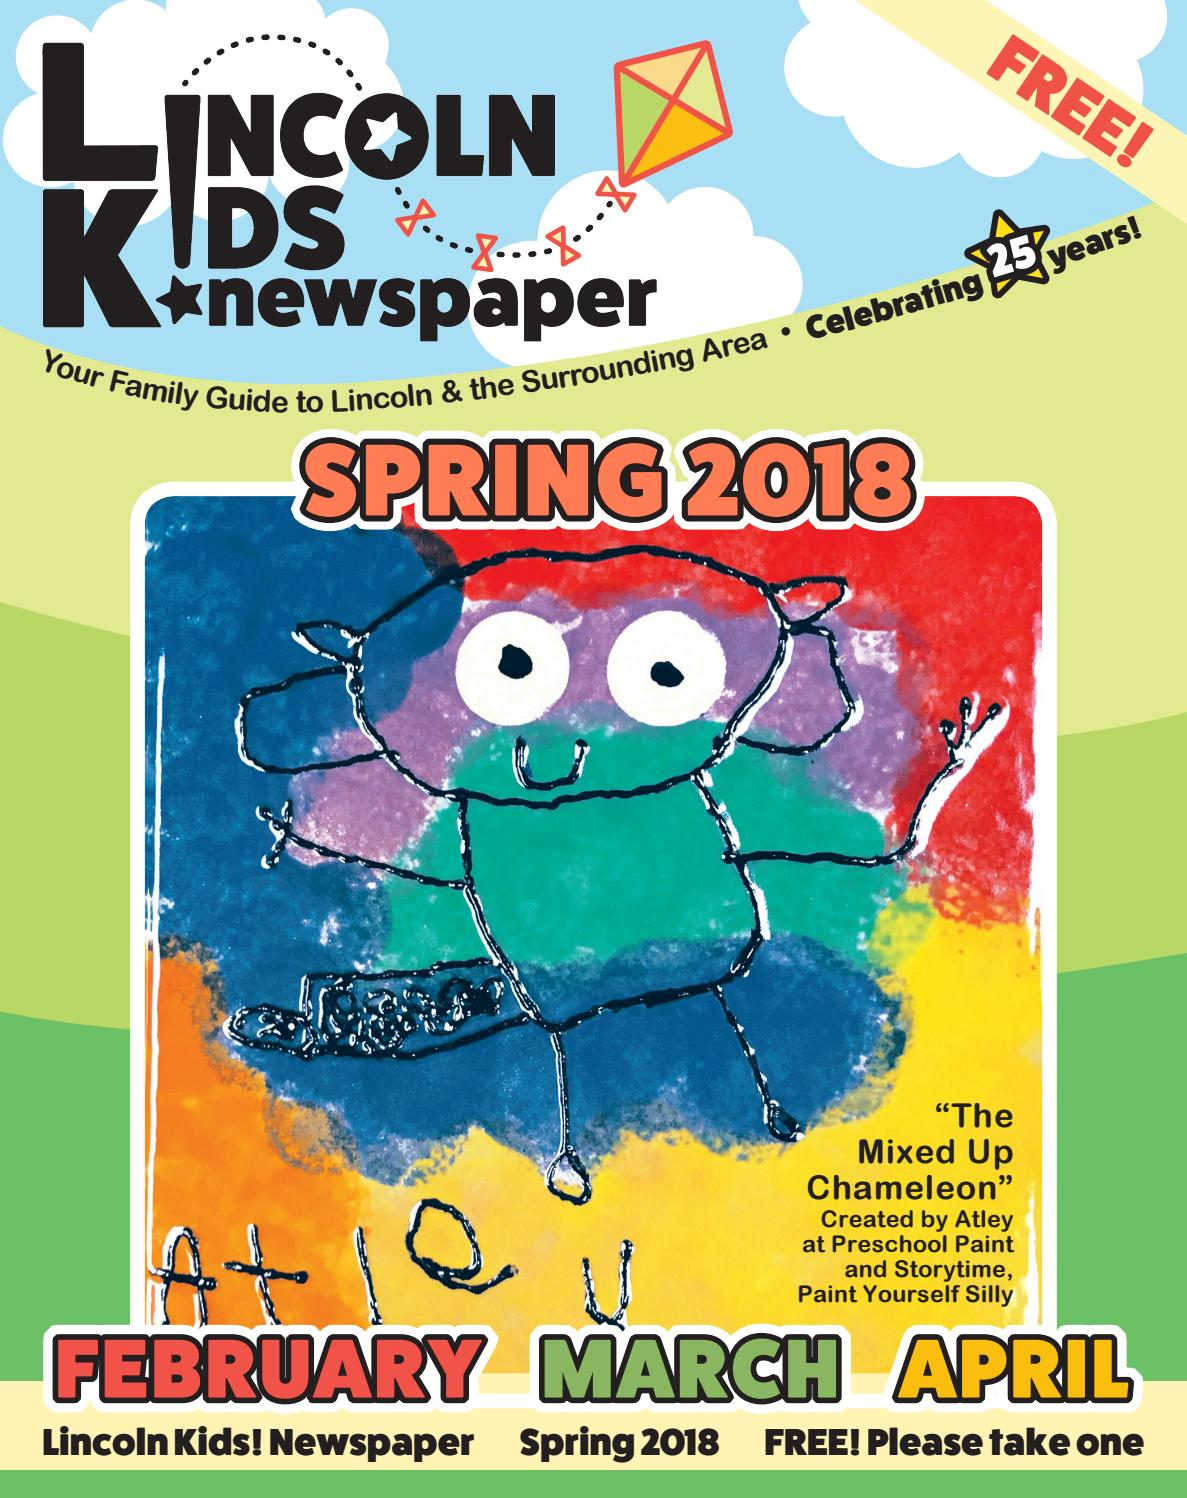 ada794f8281d Lincoln Kids! Spring Edition 2018 by Lincoln Kids! newspaper - issuu